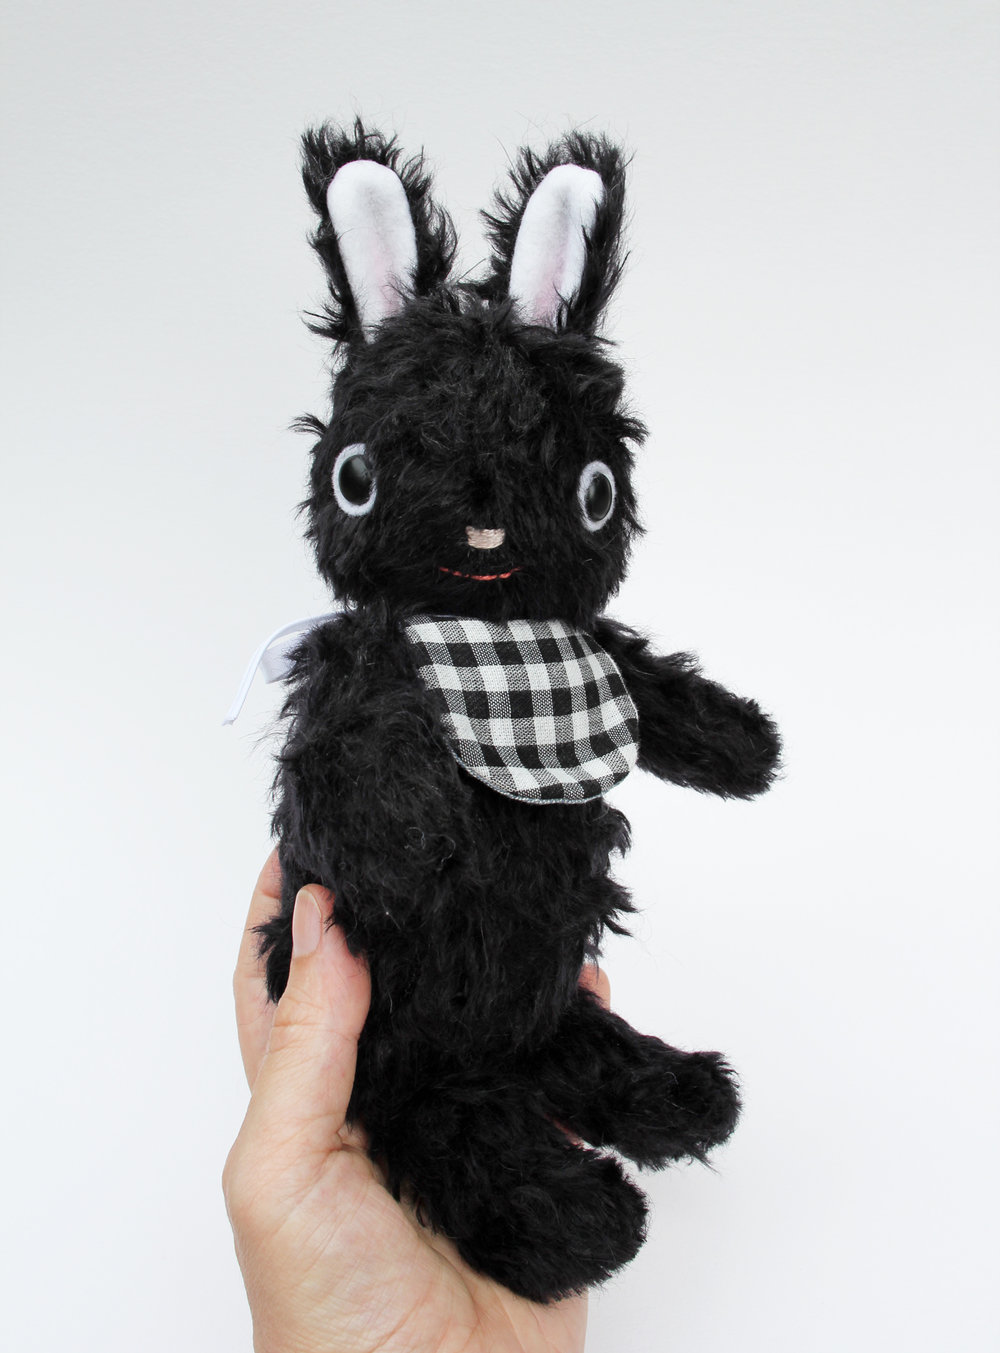 blackmohairrabbit3.jpg